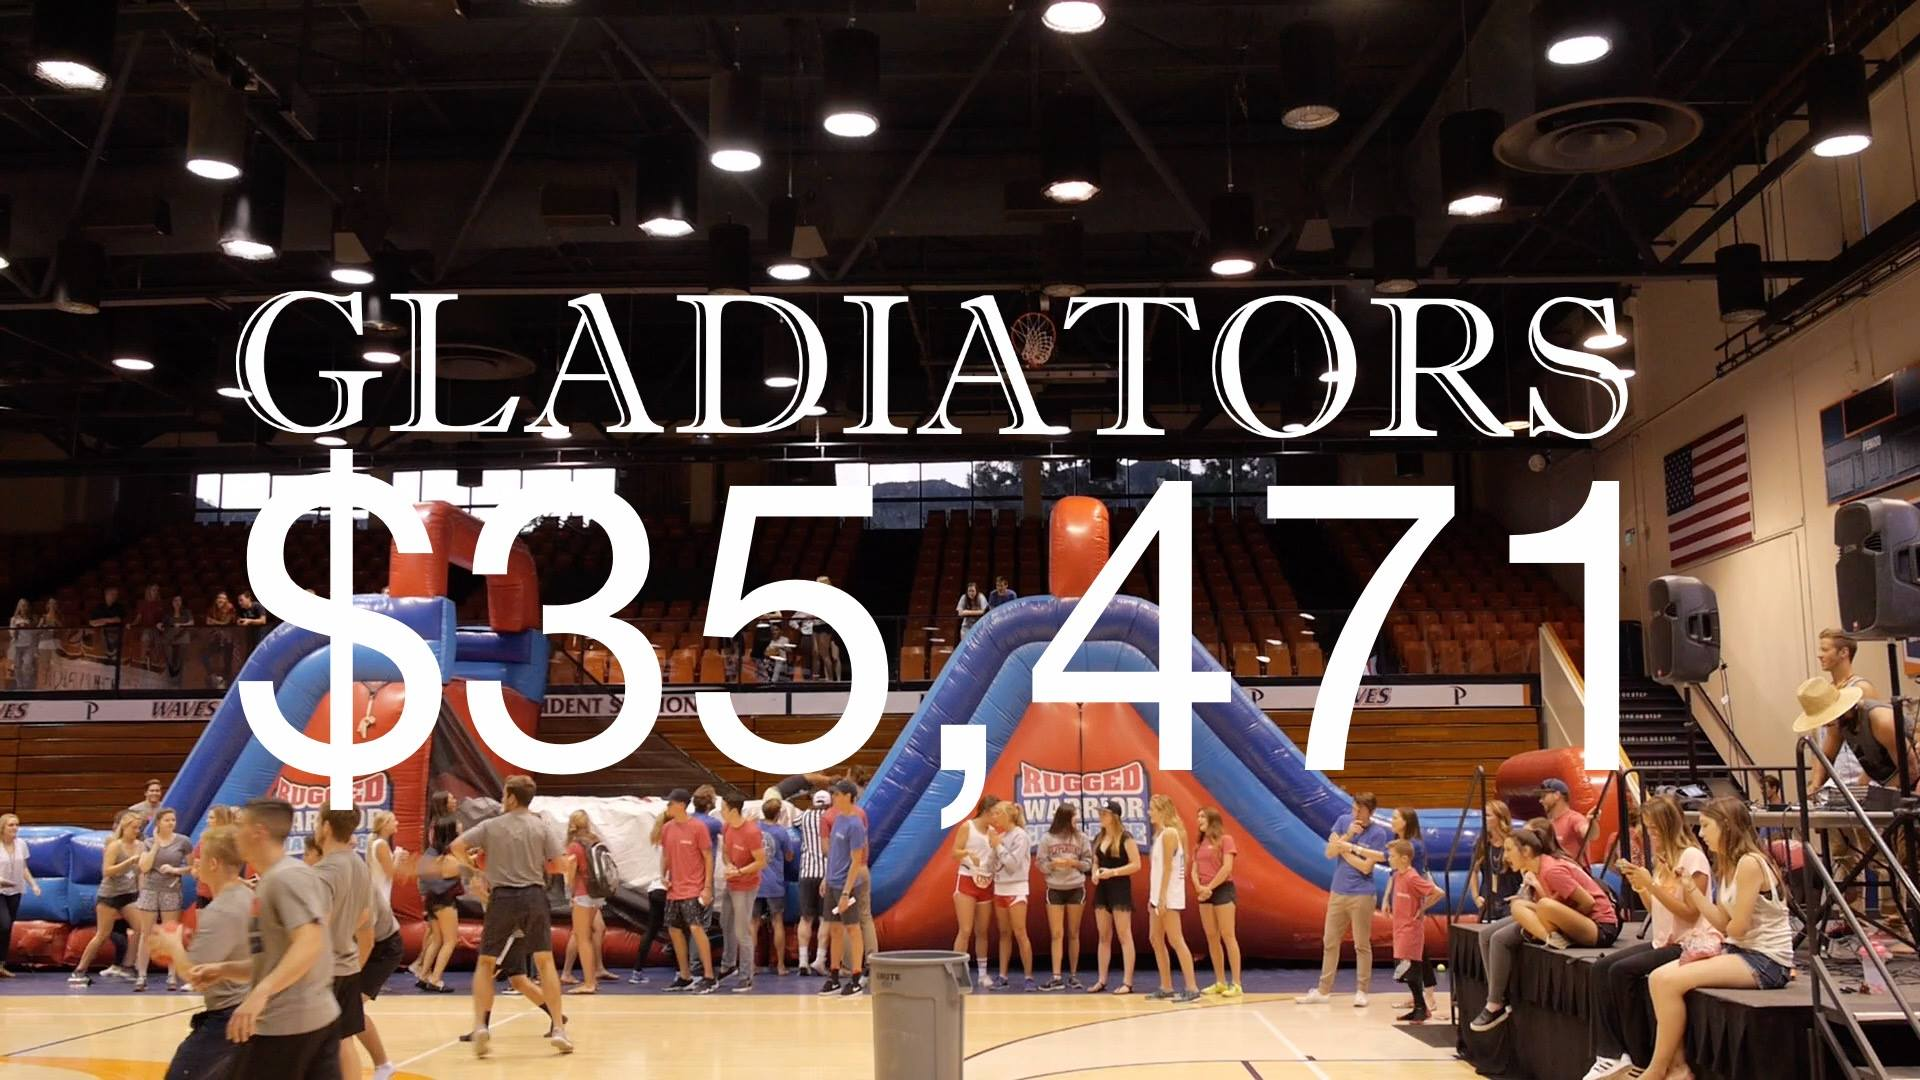 At Gladiators 2016, our community raised $35,471 for Cystic Fibrosis Research!